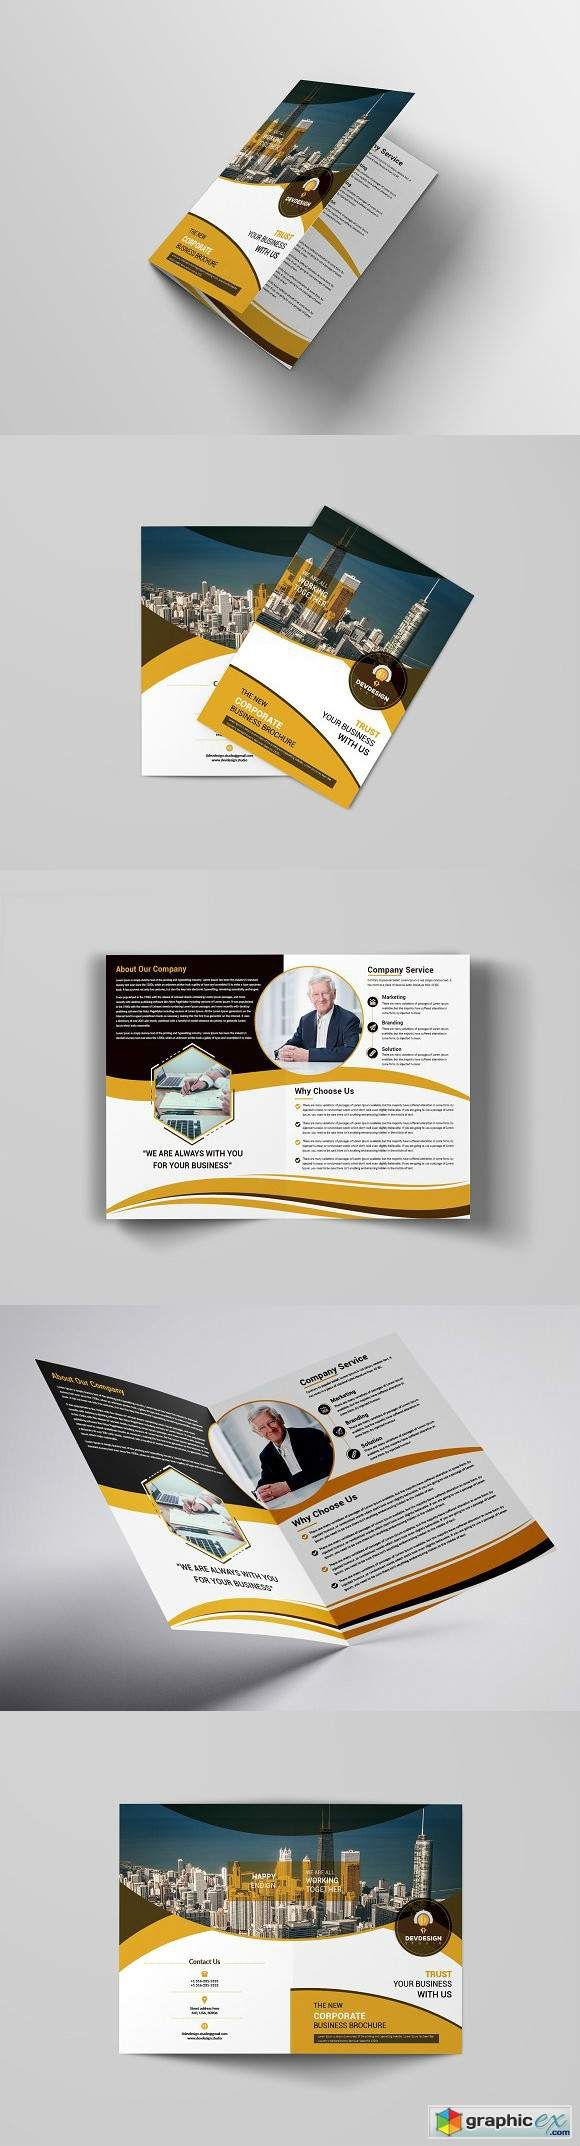 Corporate Brochure Design 3217590